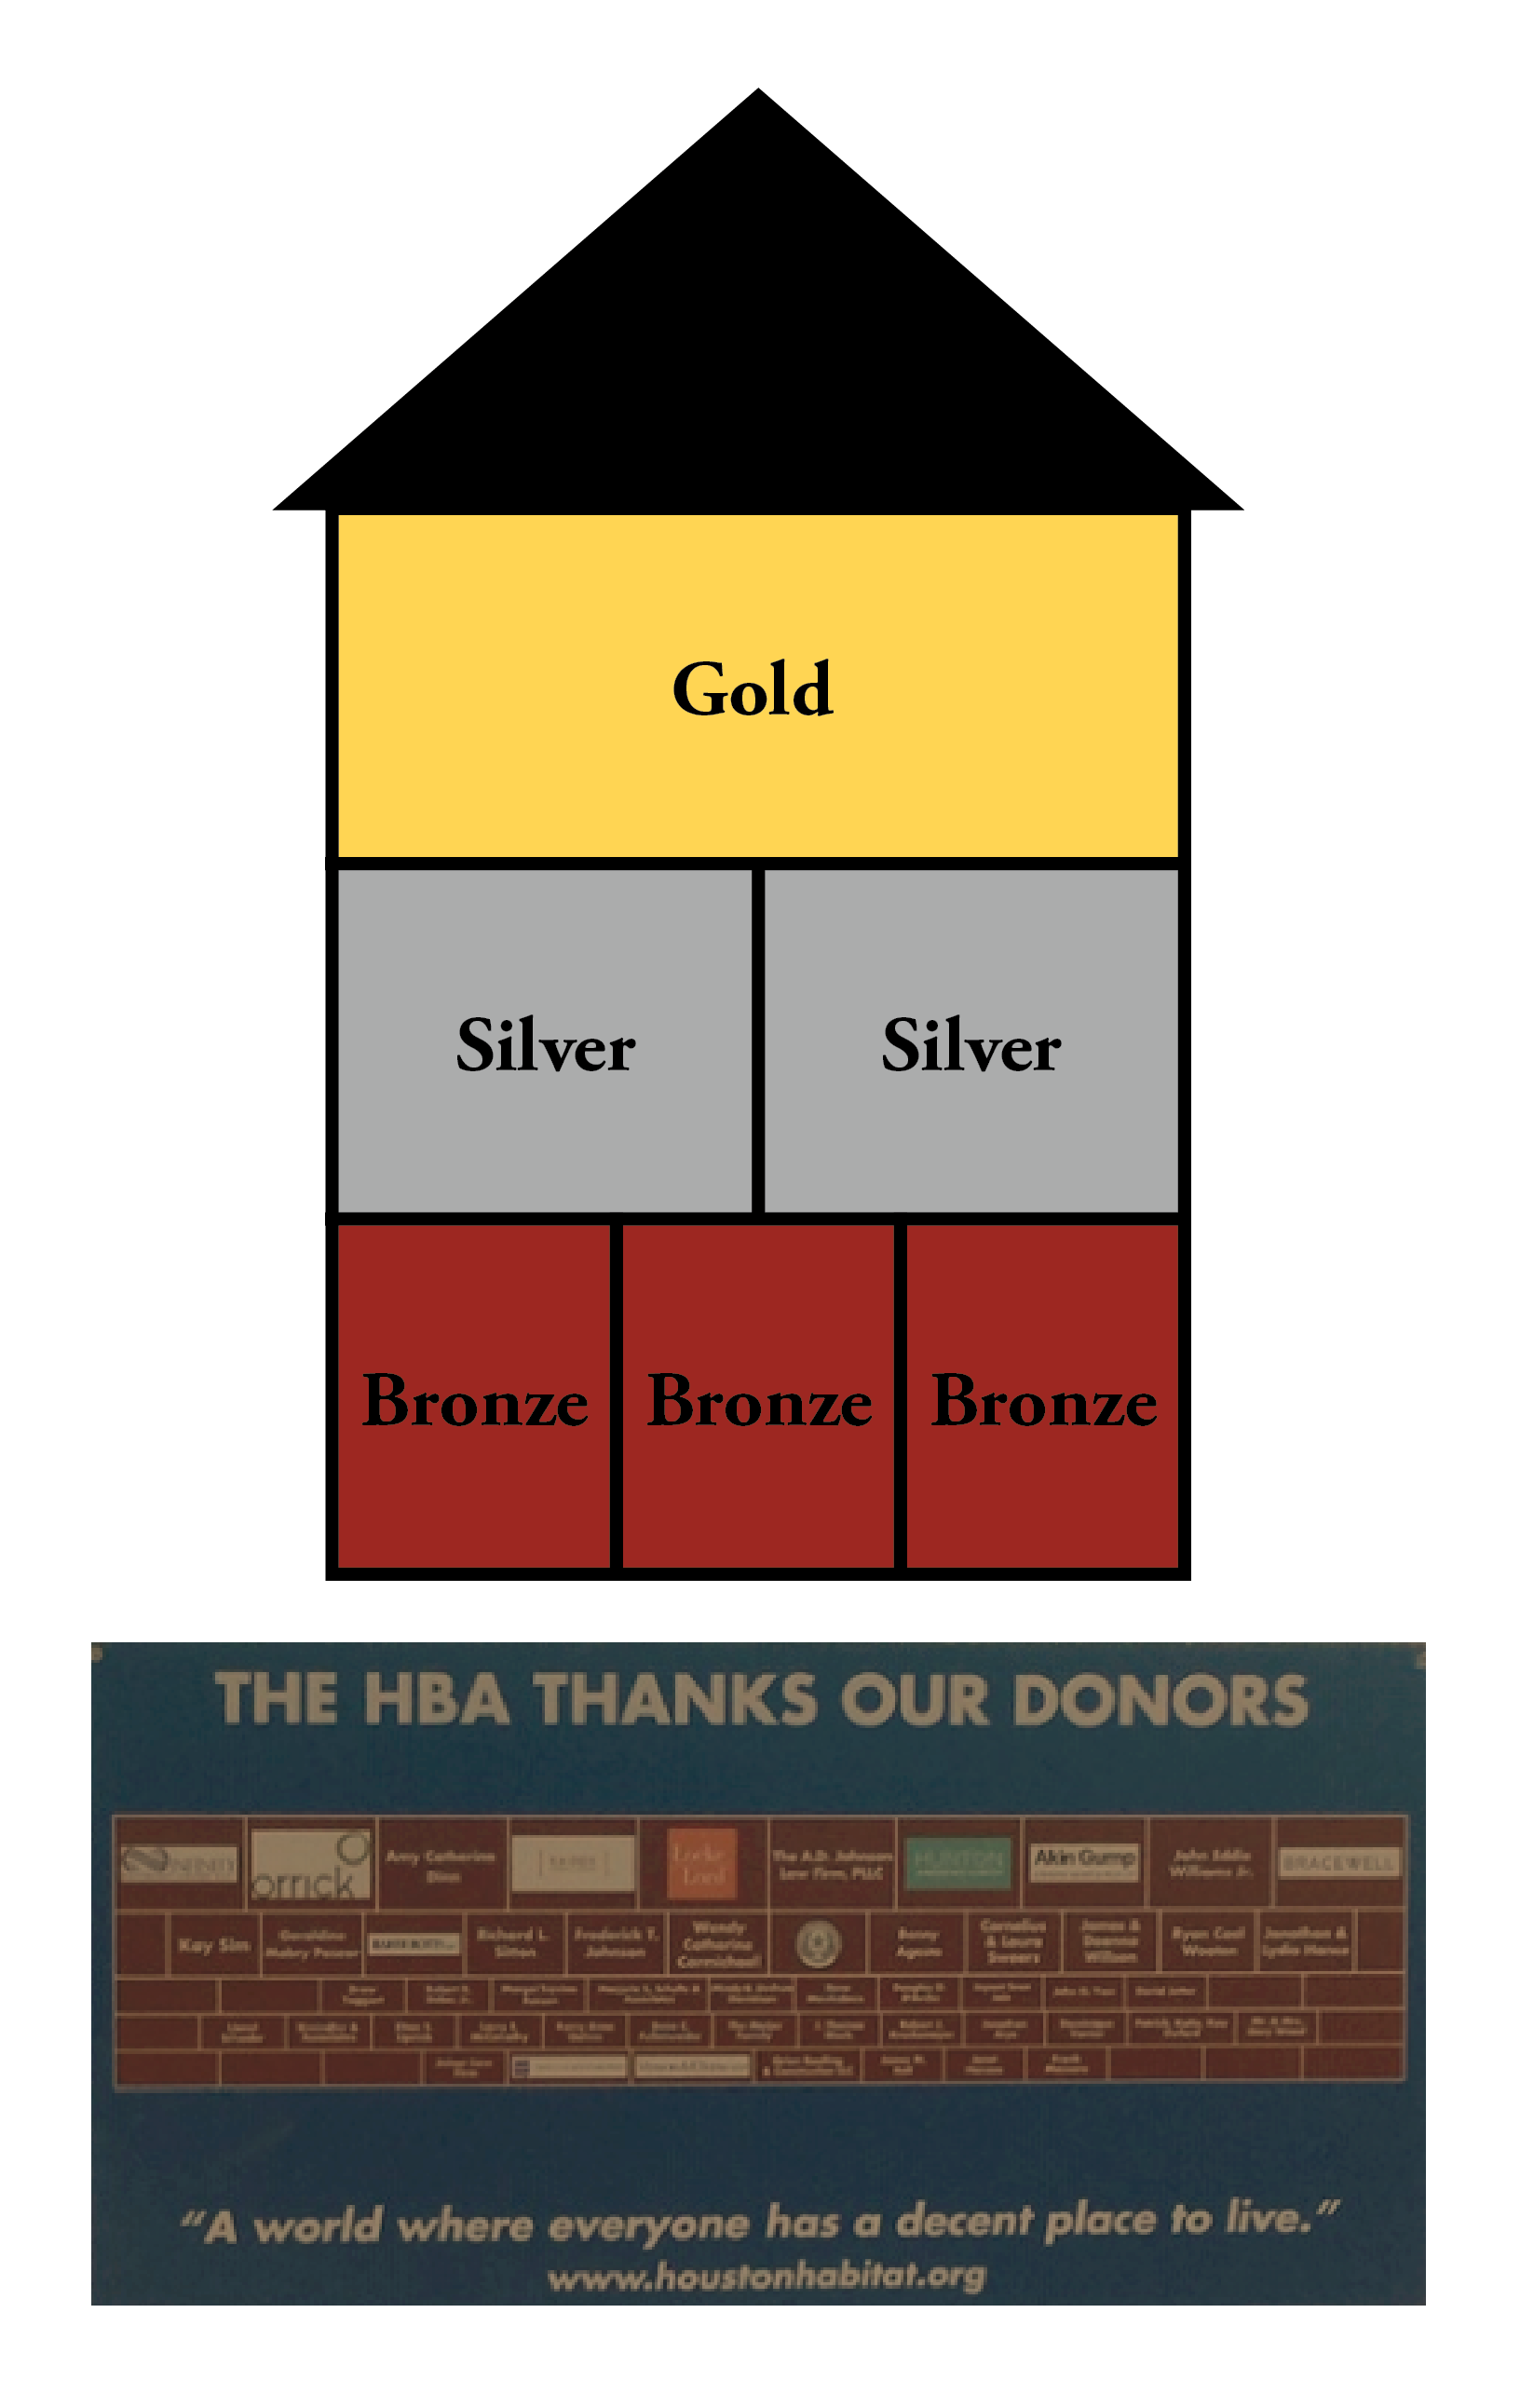 Description of HBA Habitat sponsorship levels